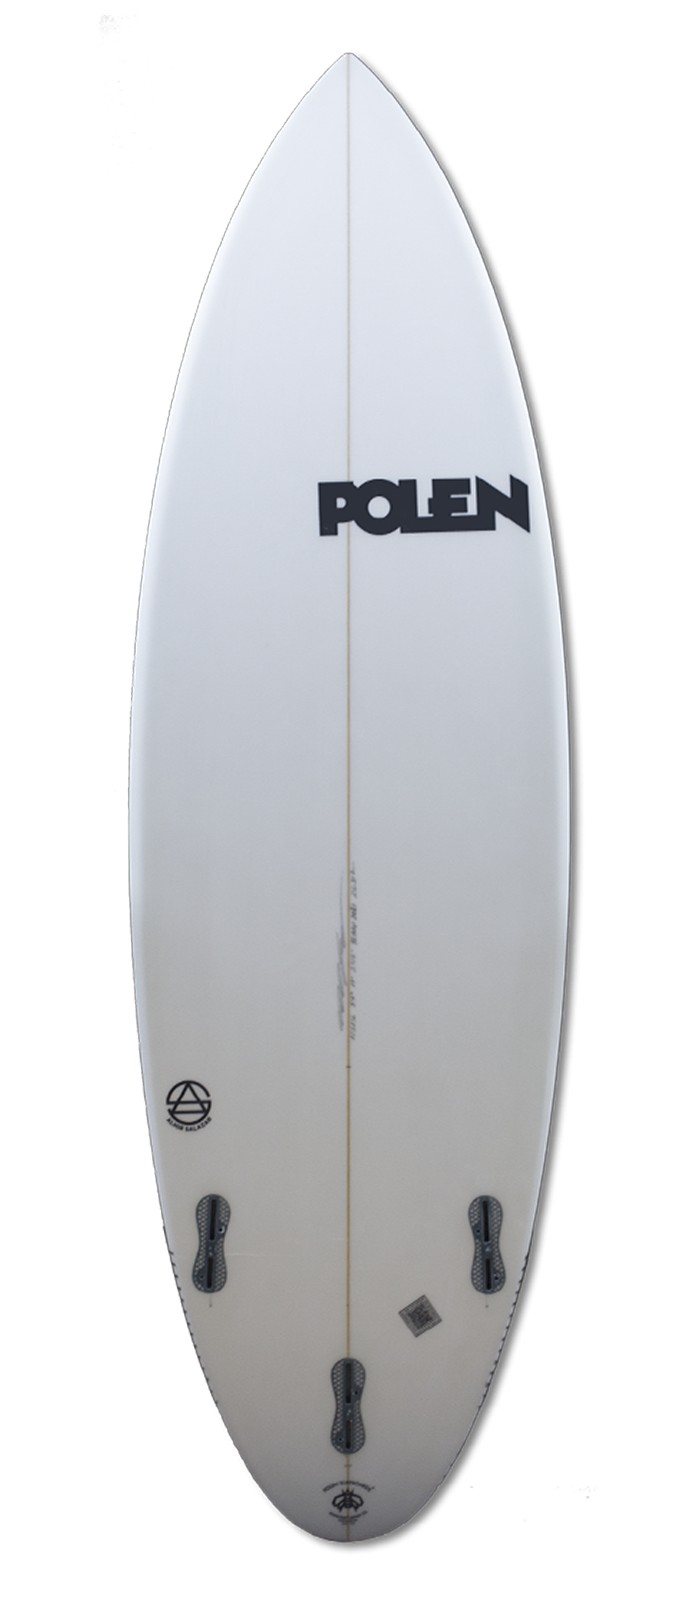 THE SCORE surfboard model bottom